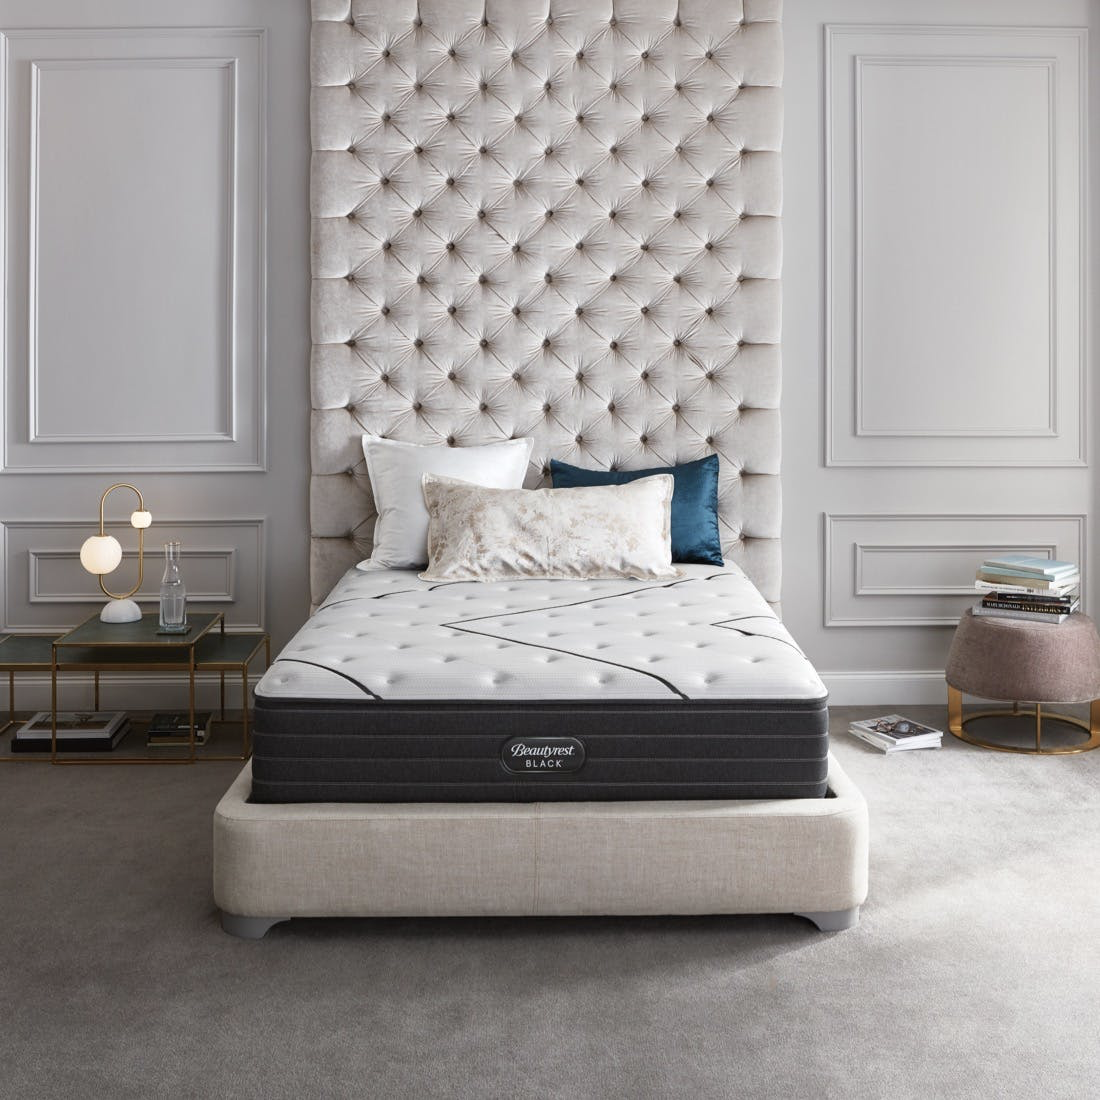 Your guide to the Best Hybrid Mattresses in the US!